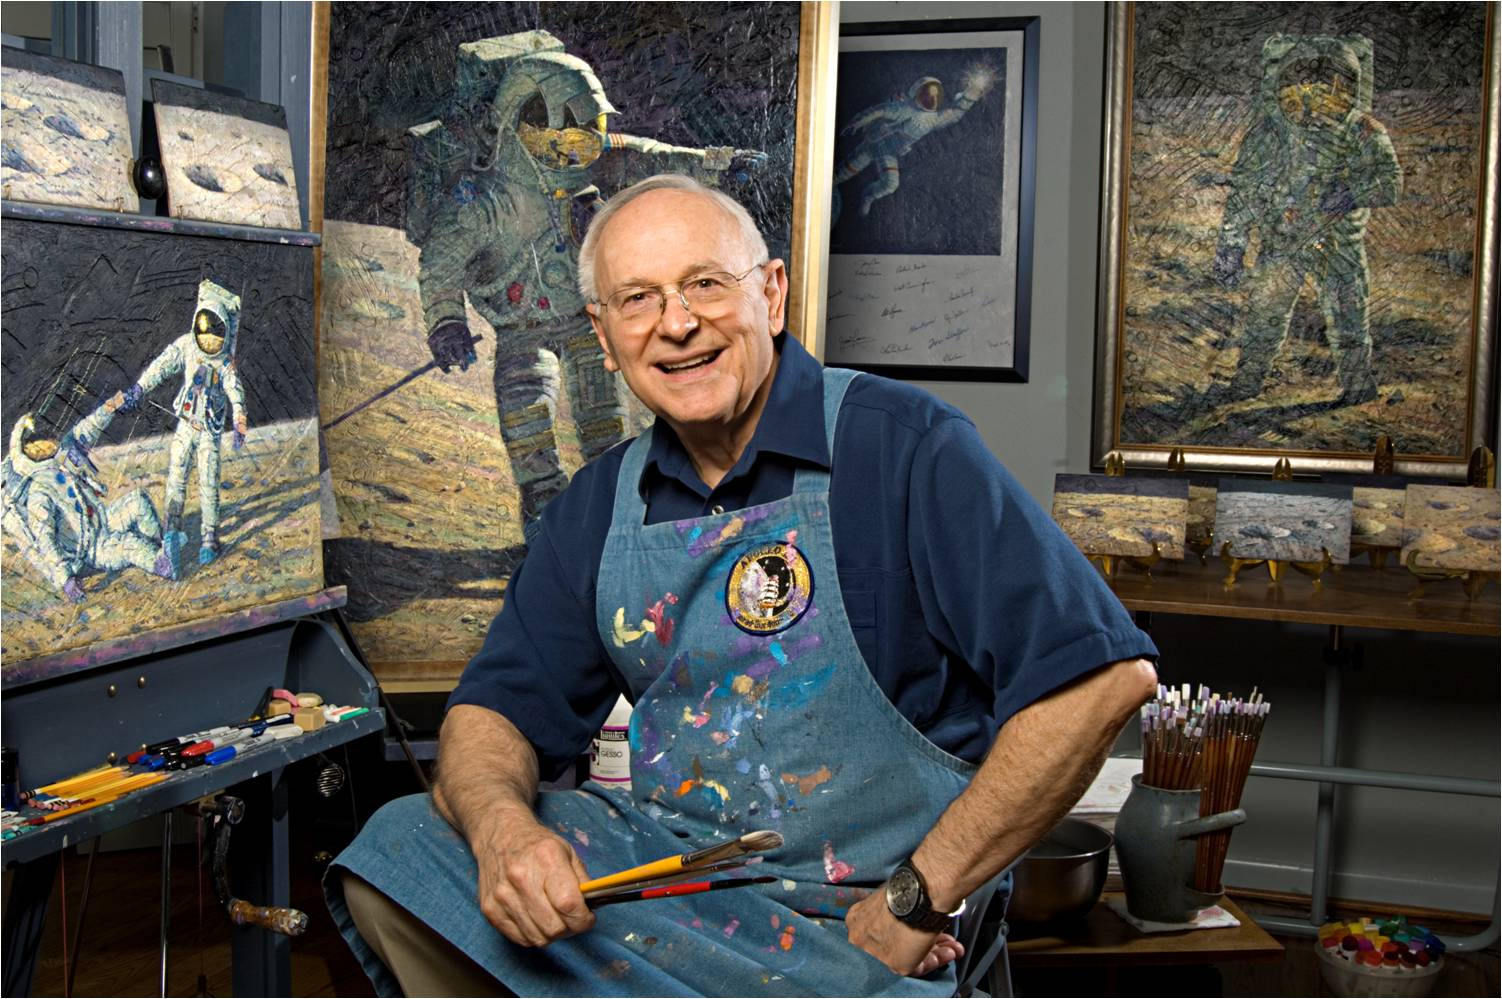 alan bean astronaut - photo #10